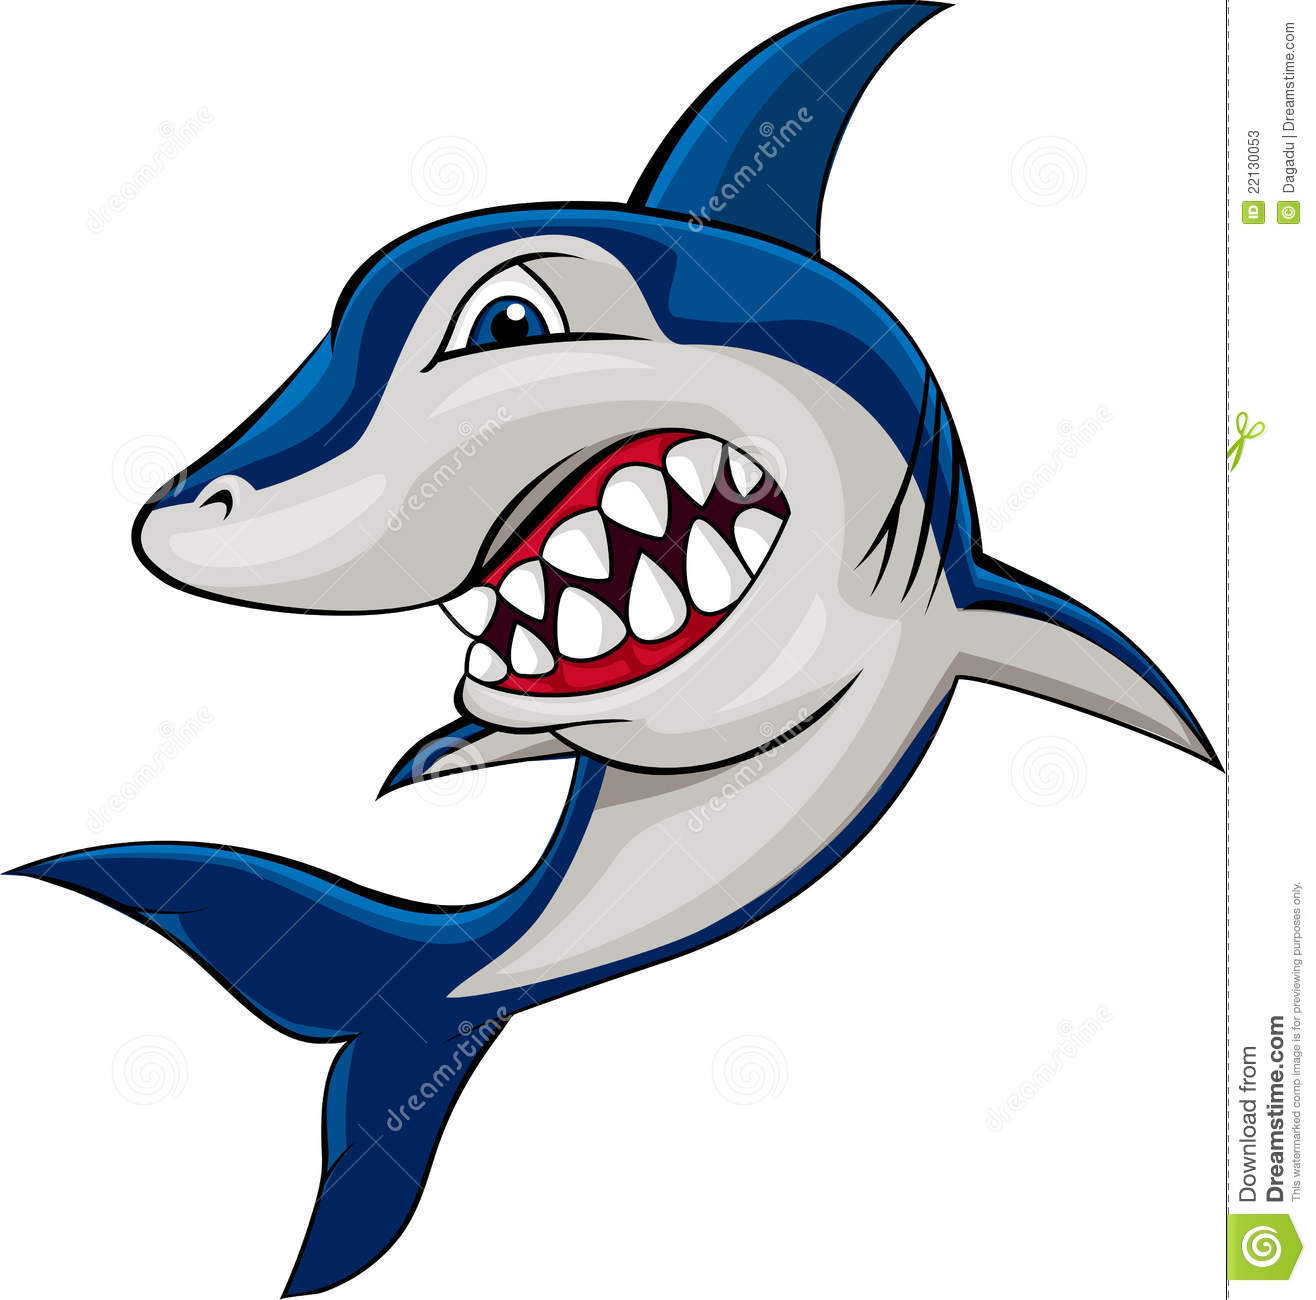 Bull Shark clipart happy Download Shark Shark drawings Shark